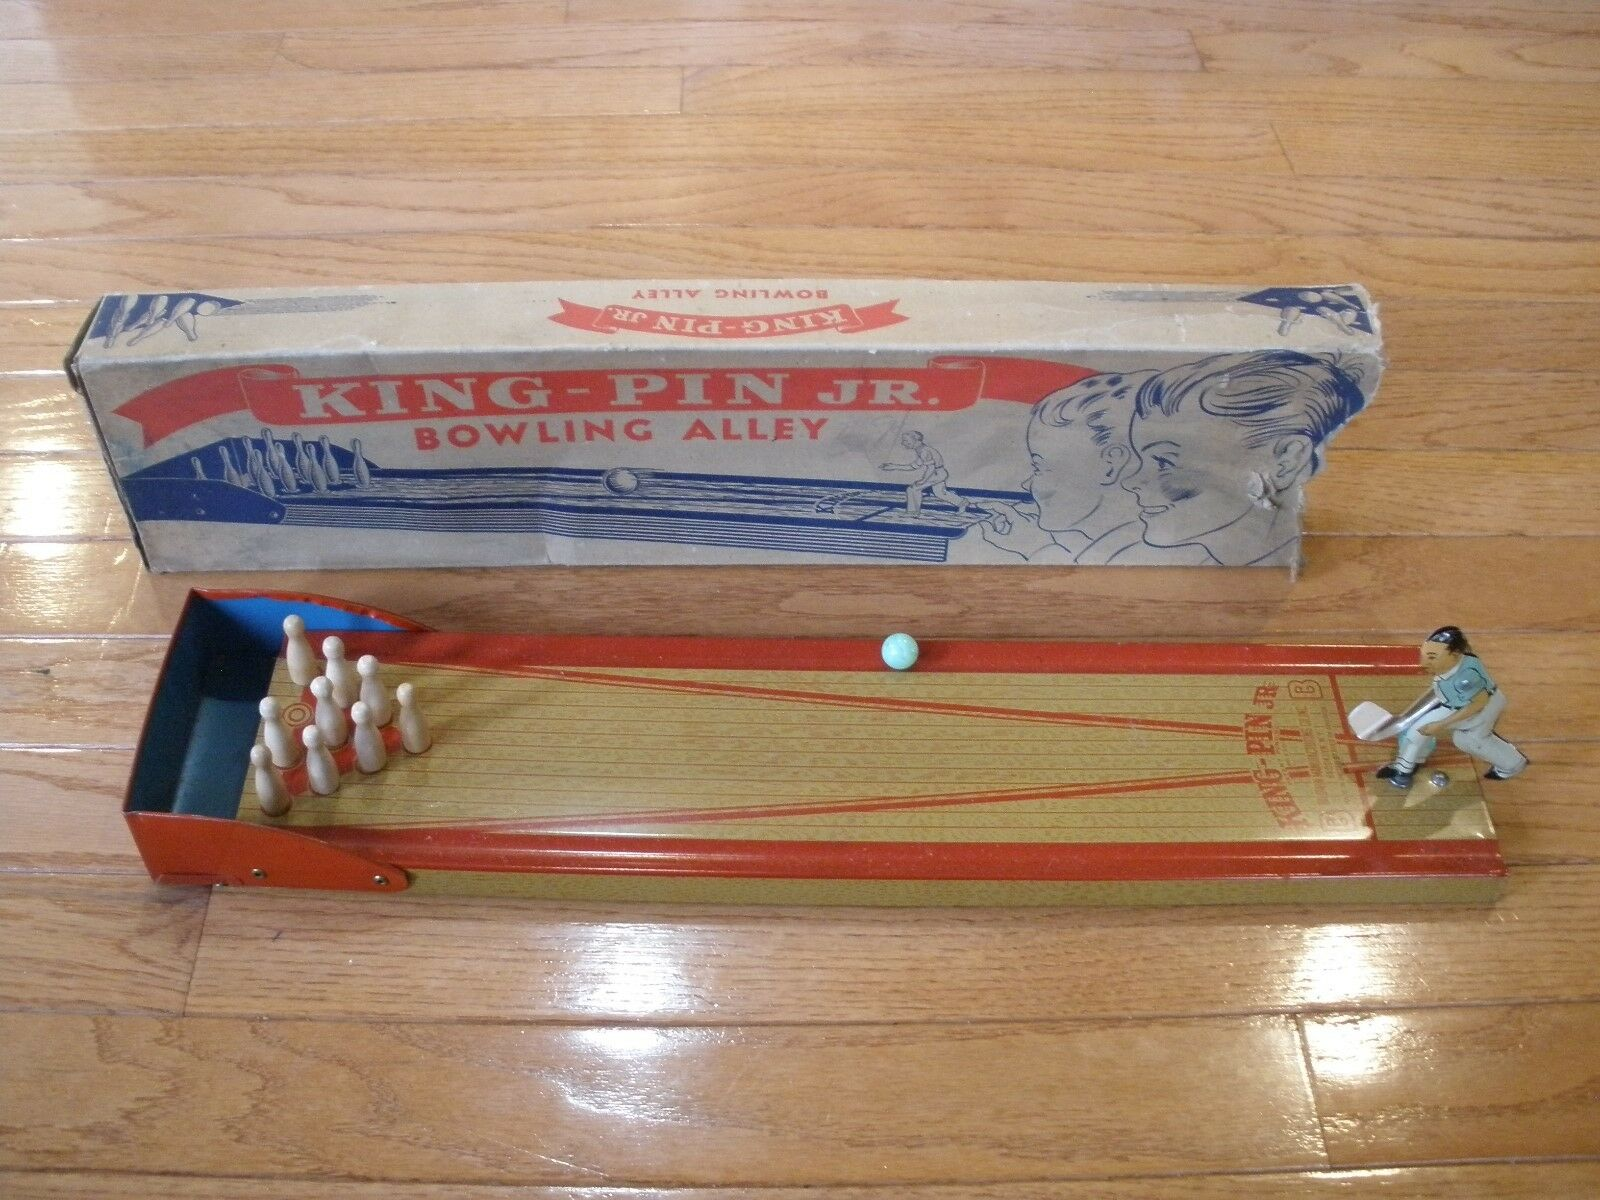 1930s KINGPIN JR. BOWLING ALLEY TOY - Tin Lithograph Toy